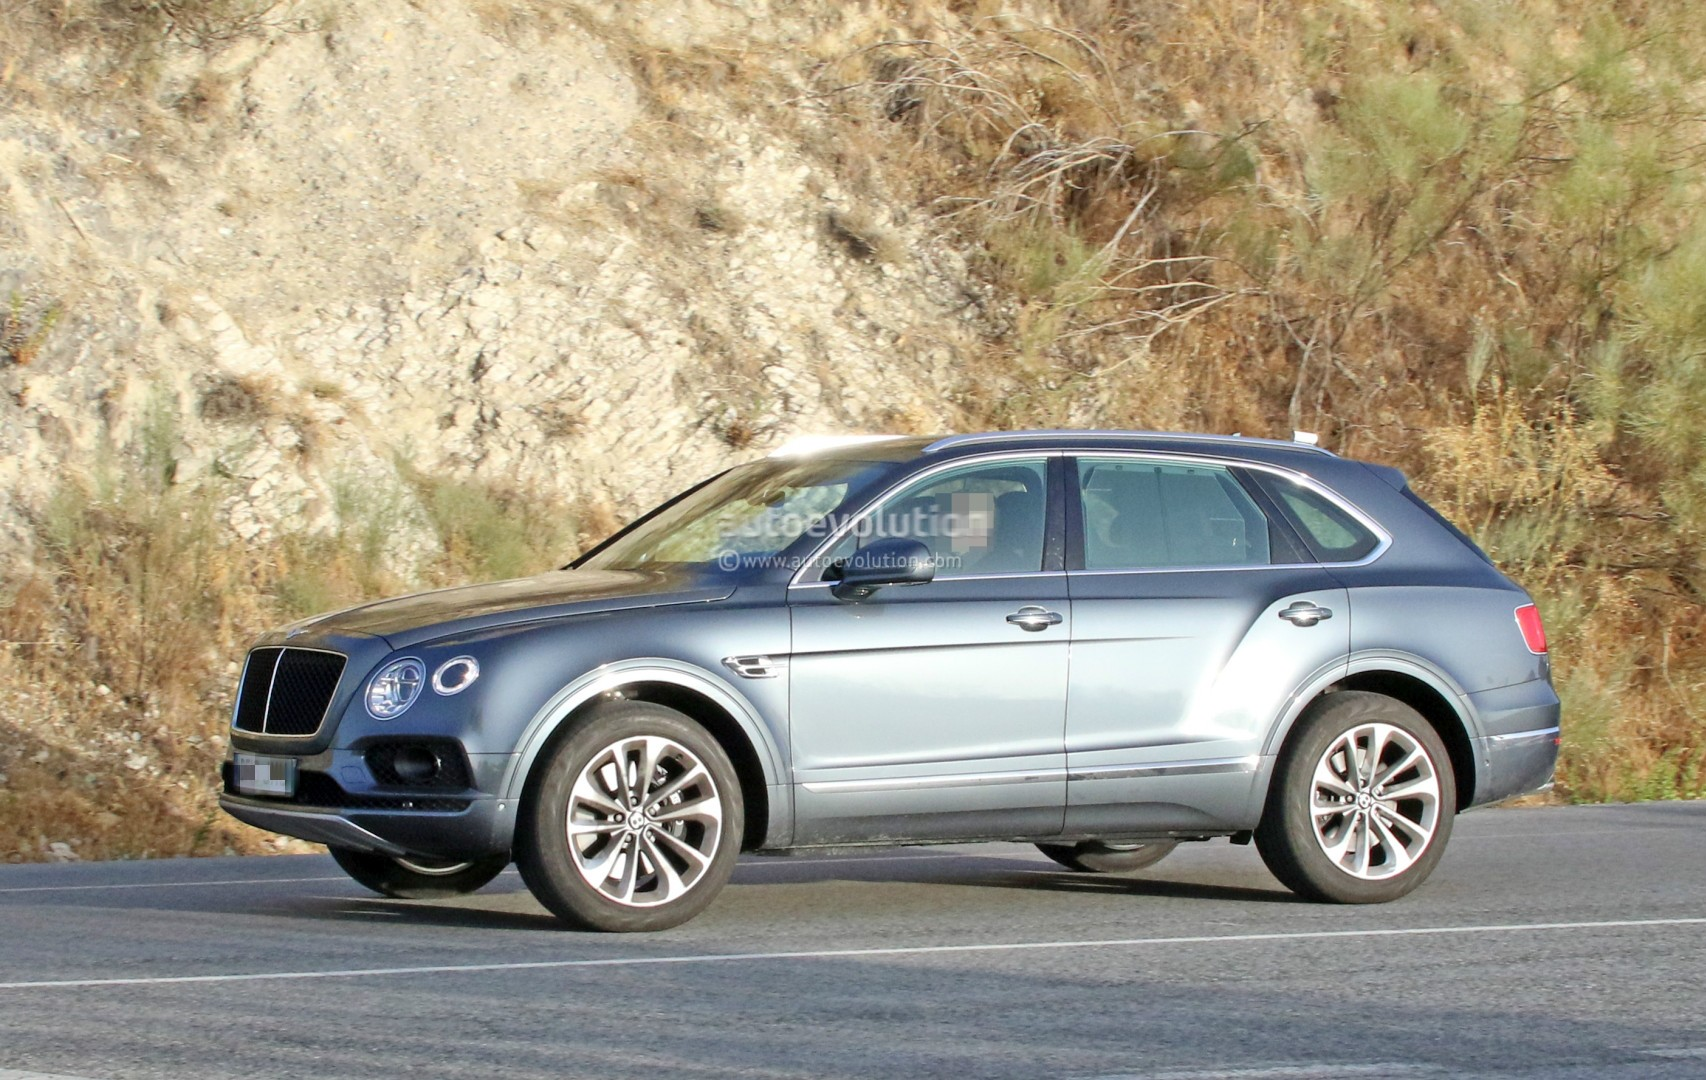 2016 Bentley Bentayga (SUV) 43